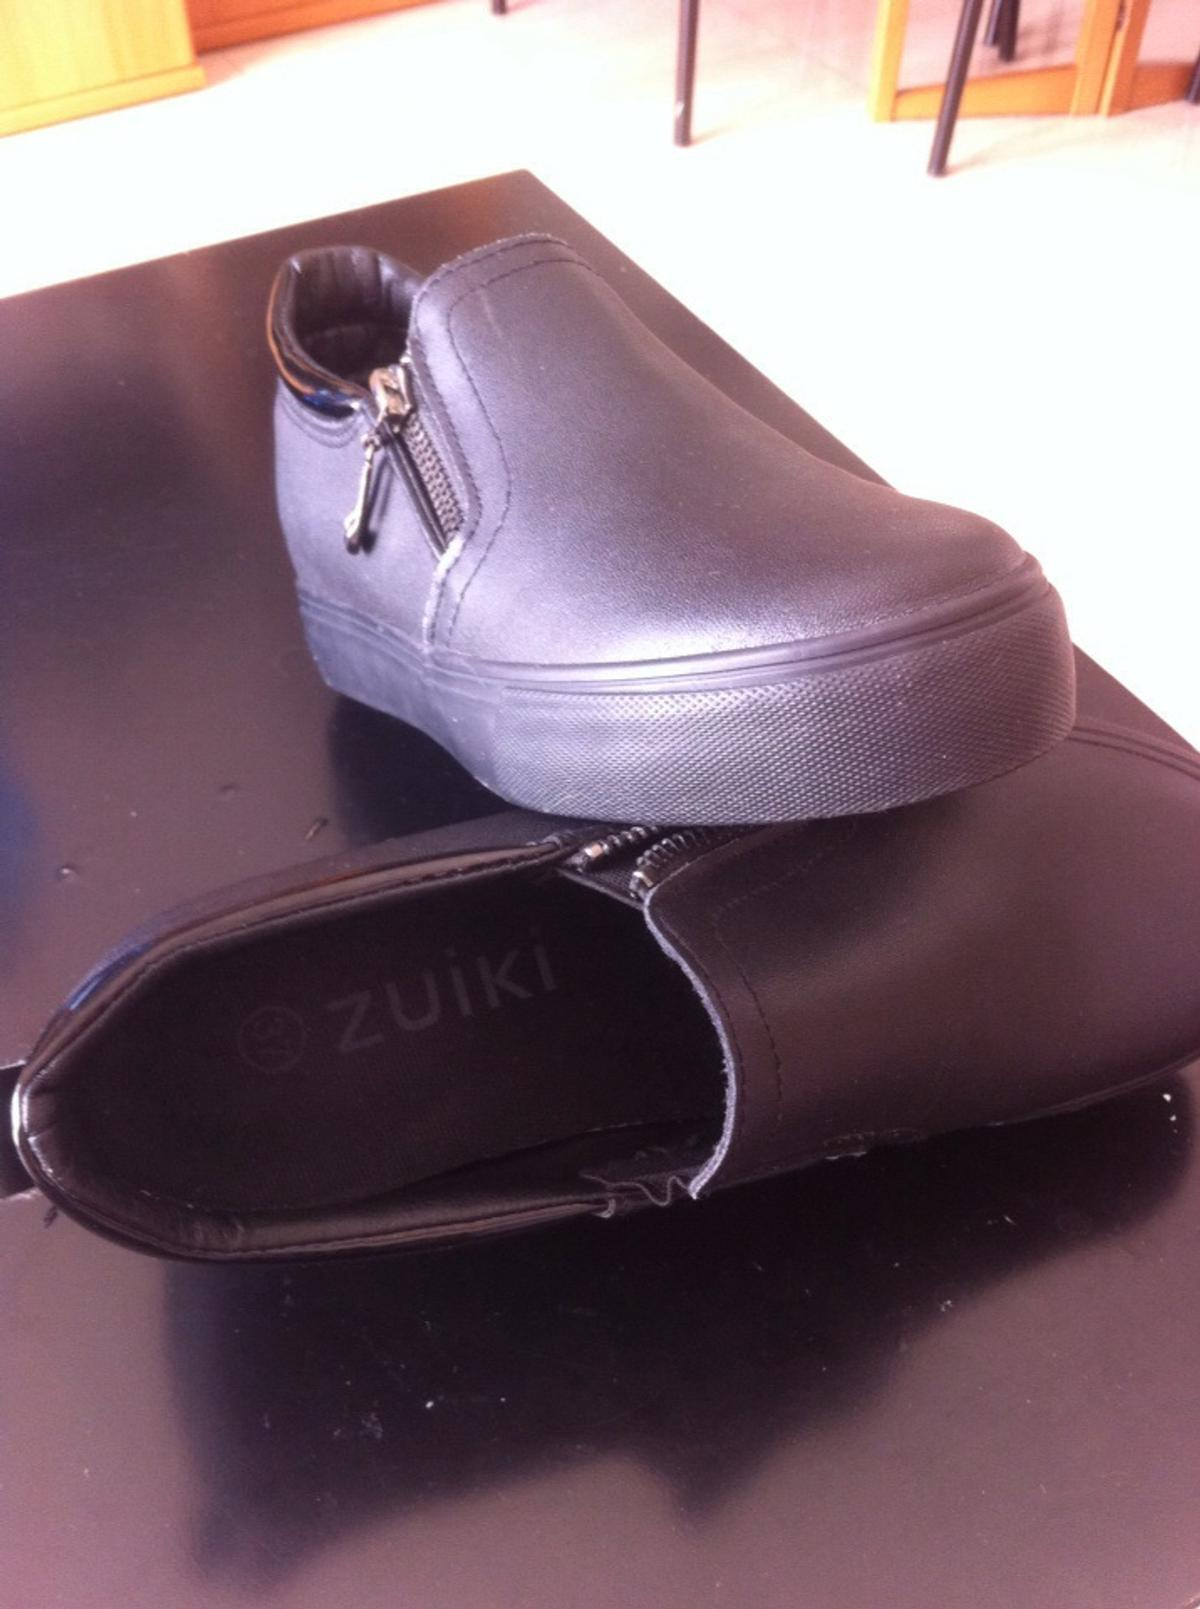 new products 8f754 f77e7 Scarpe Zuiki nuove in 37133 Vérone for €10.00 for sale - Shpock